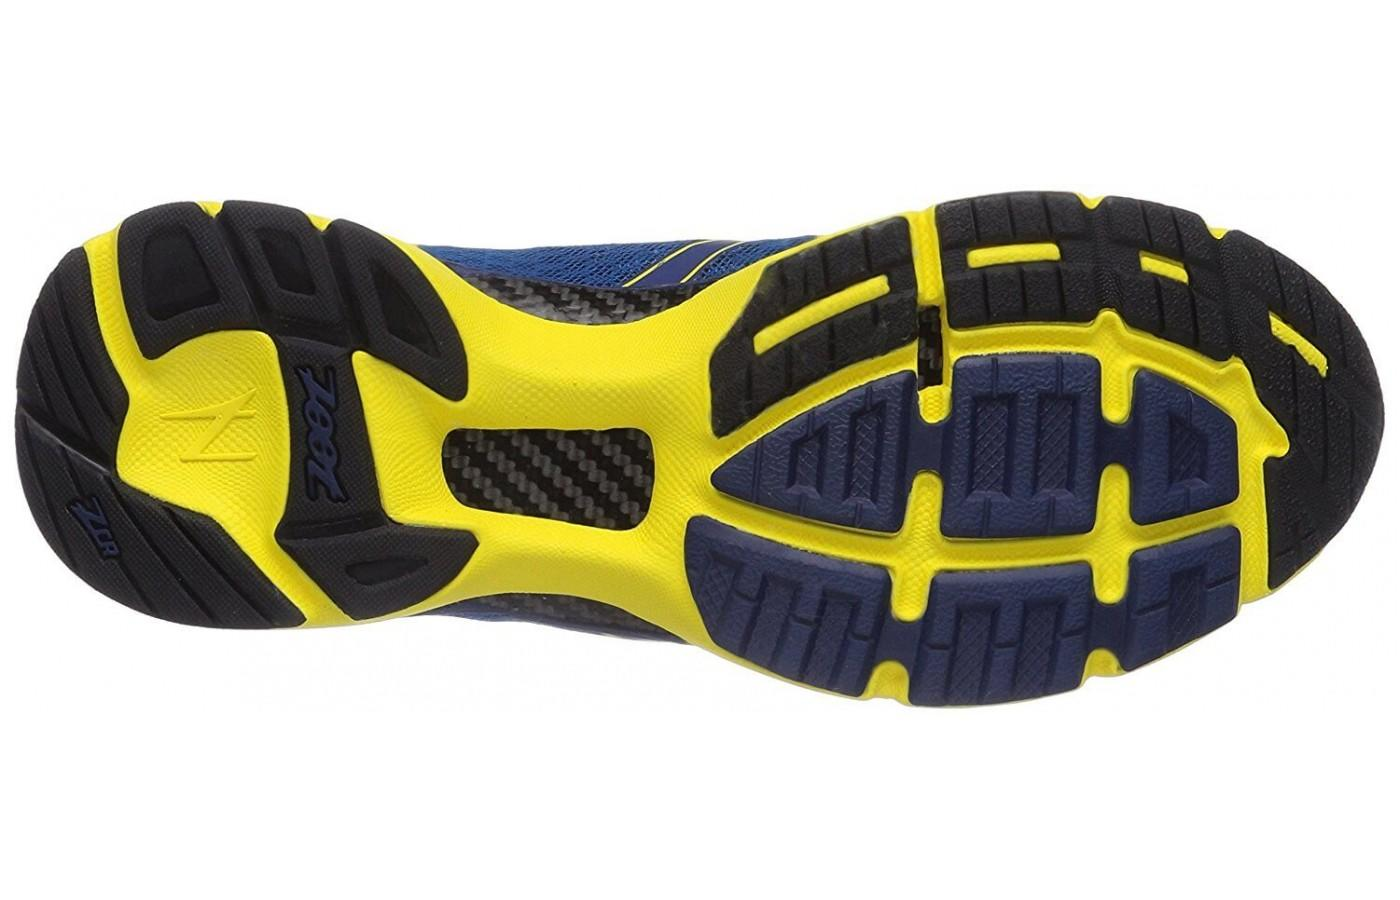 the outsole of the Zoot Carlsbad